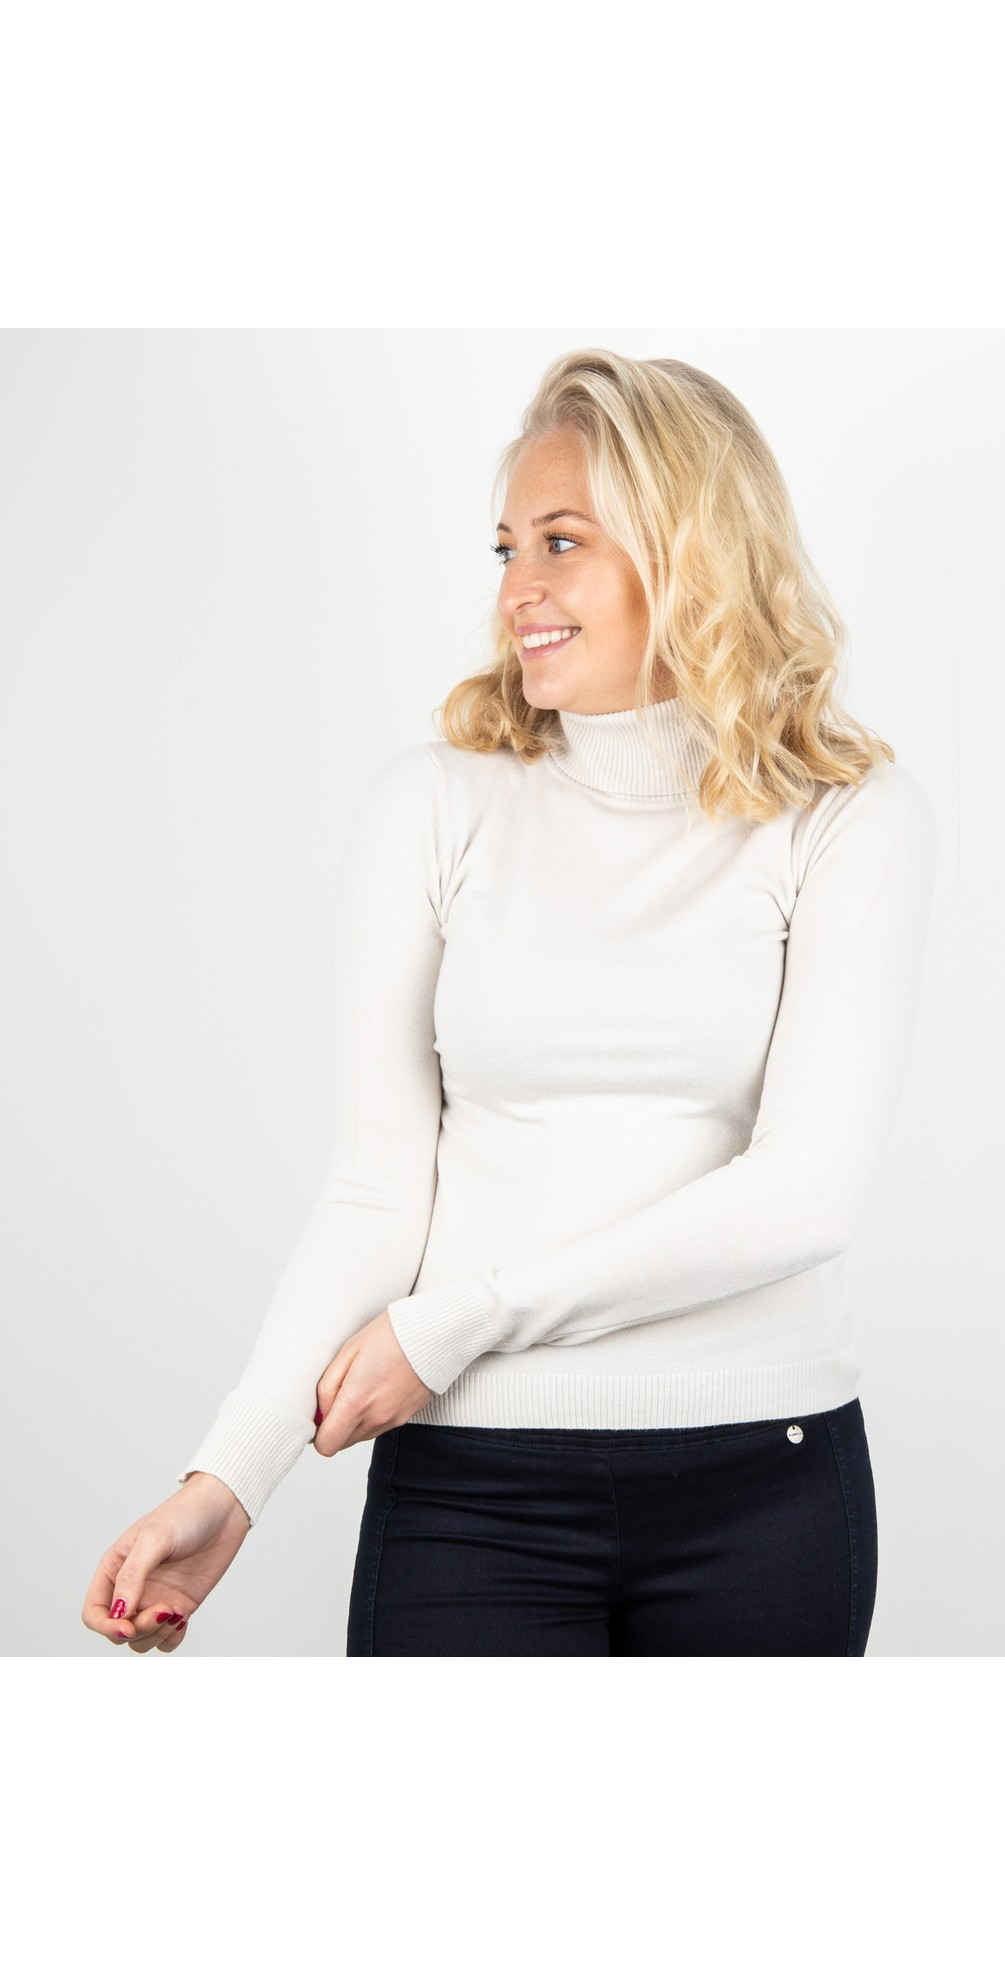 Britt Fineknit Fitted Polo Neck Jumper main image